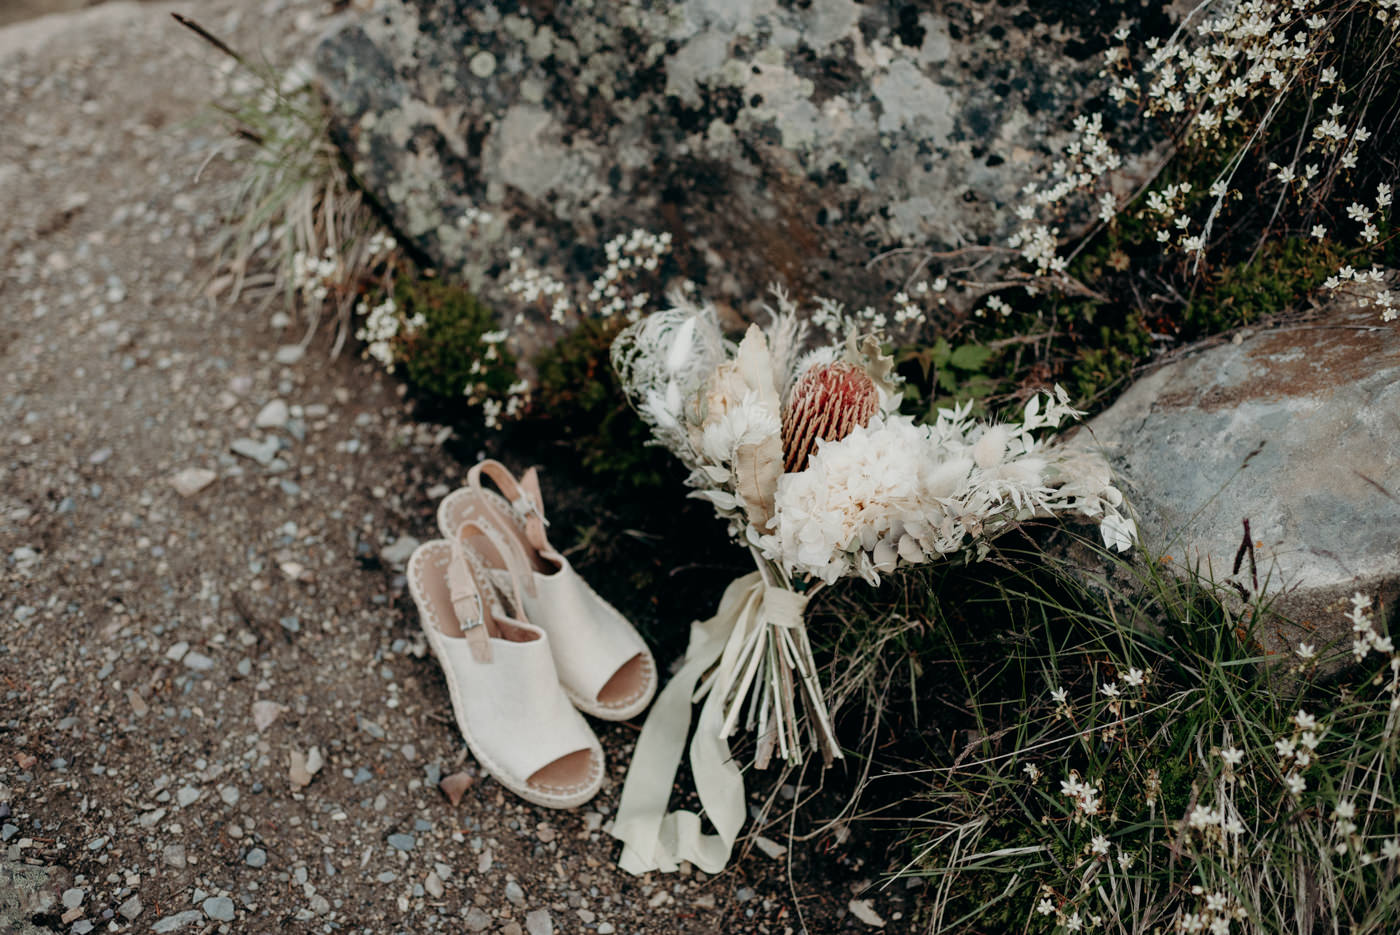 shoes and bouquet on the ground